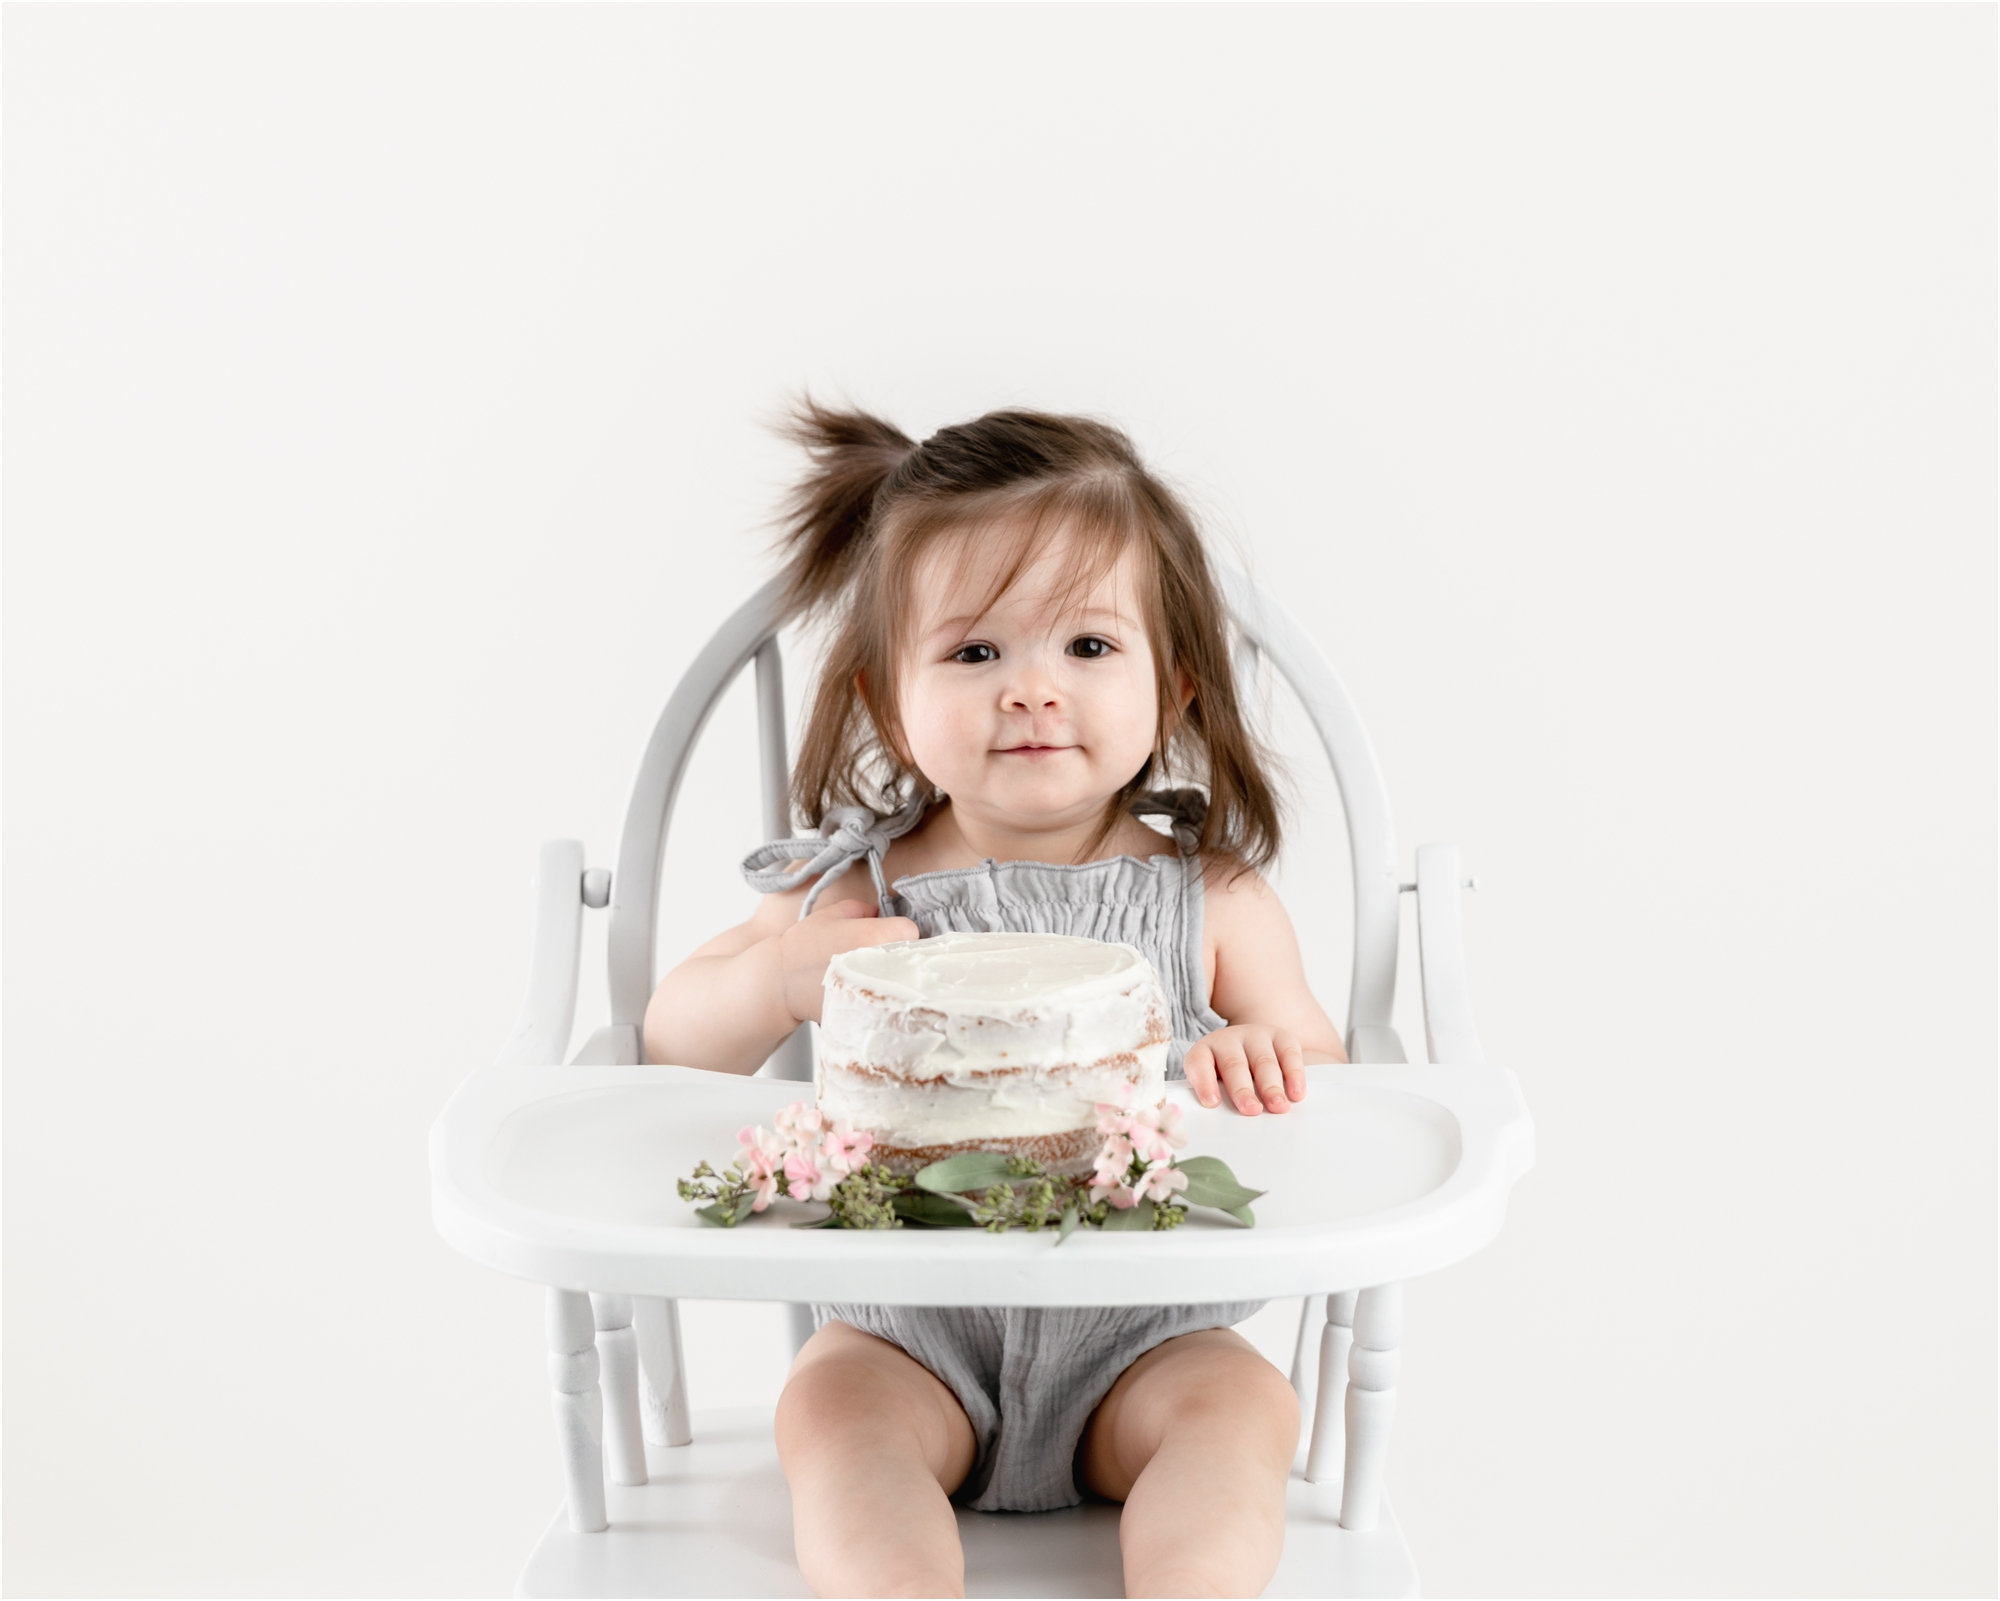 Little girl smiling in highchair with birthday cake and florals. Photo by Lifetime of Clicks Photography.